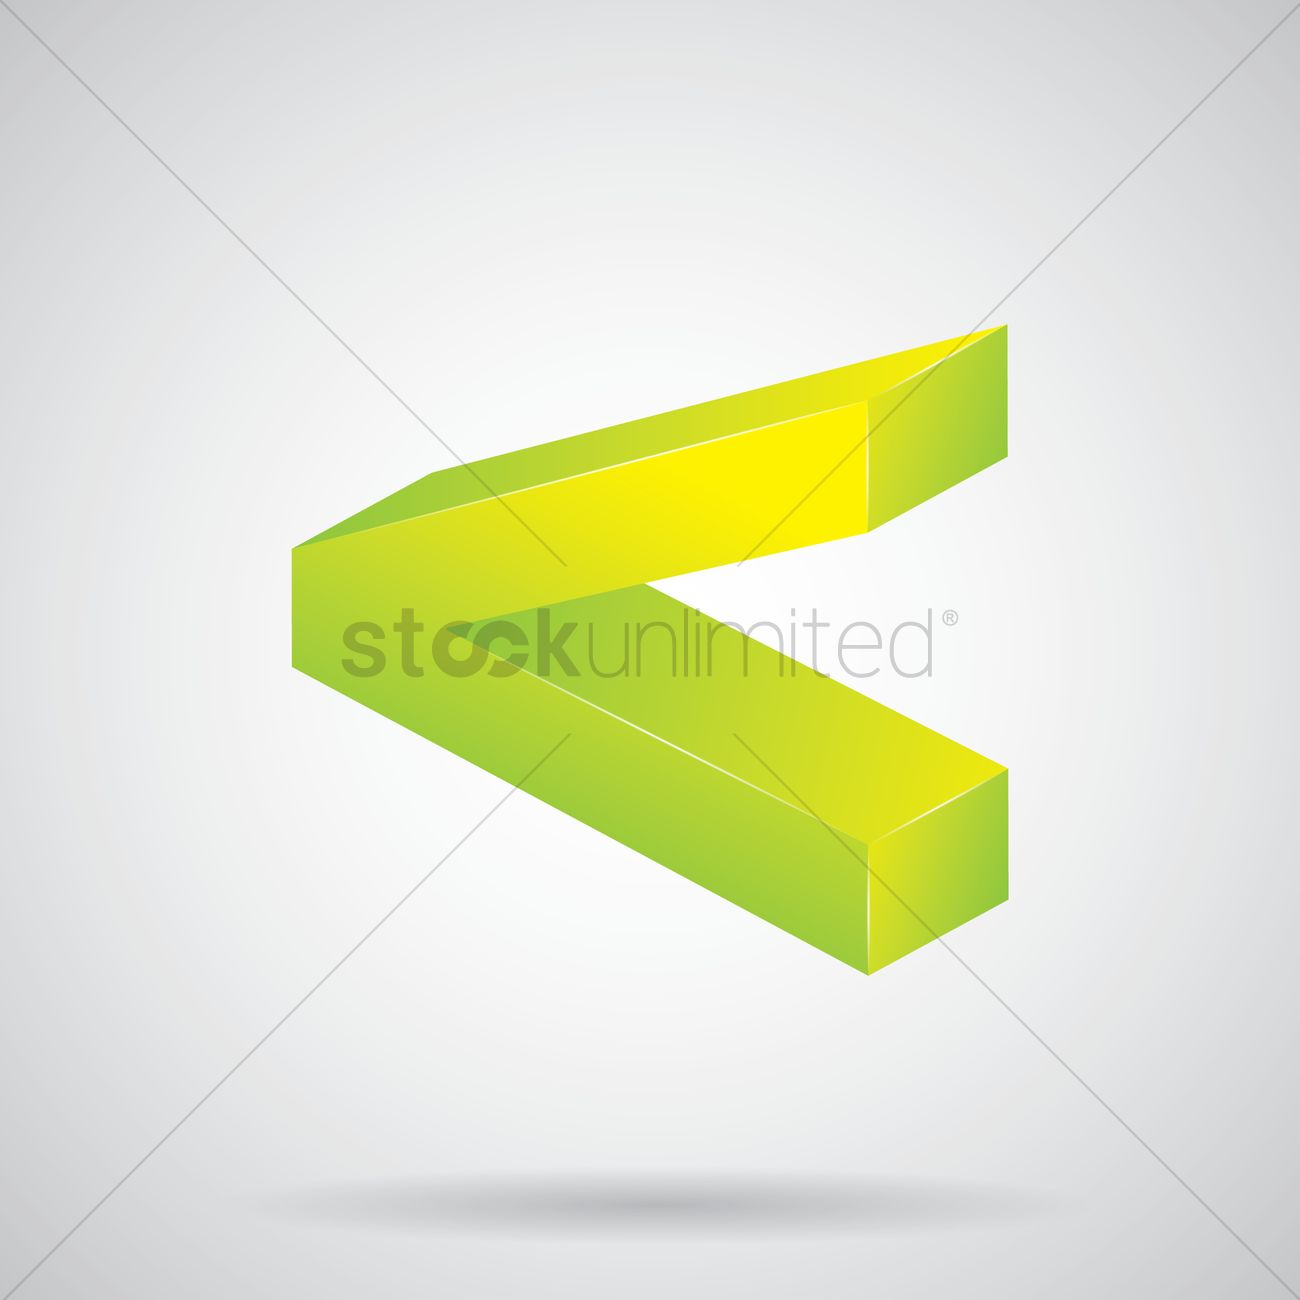 Less than sign Vector Image - 1608948 | StockUnlimited